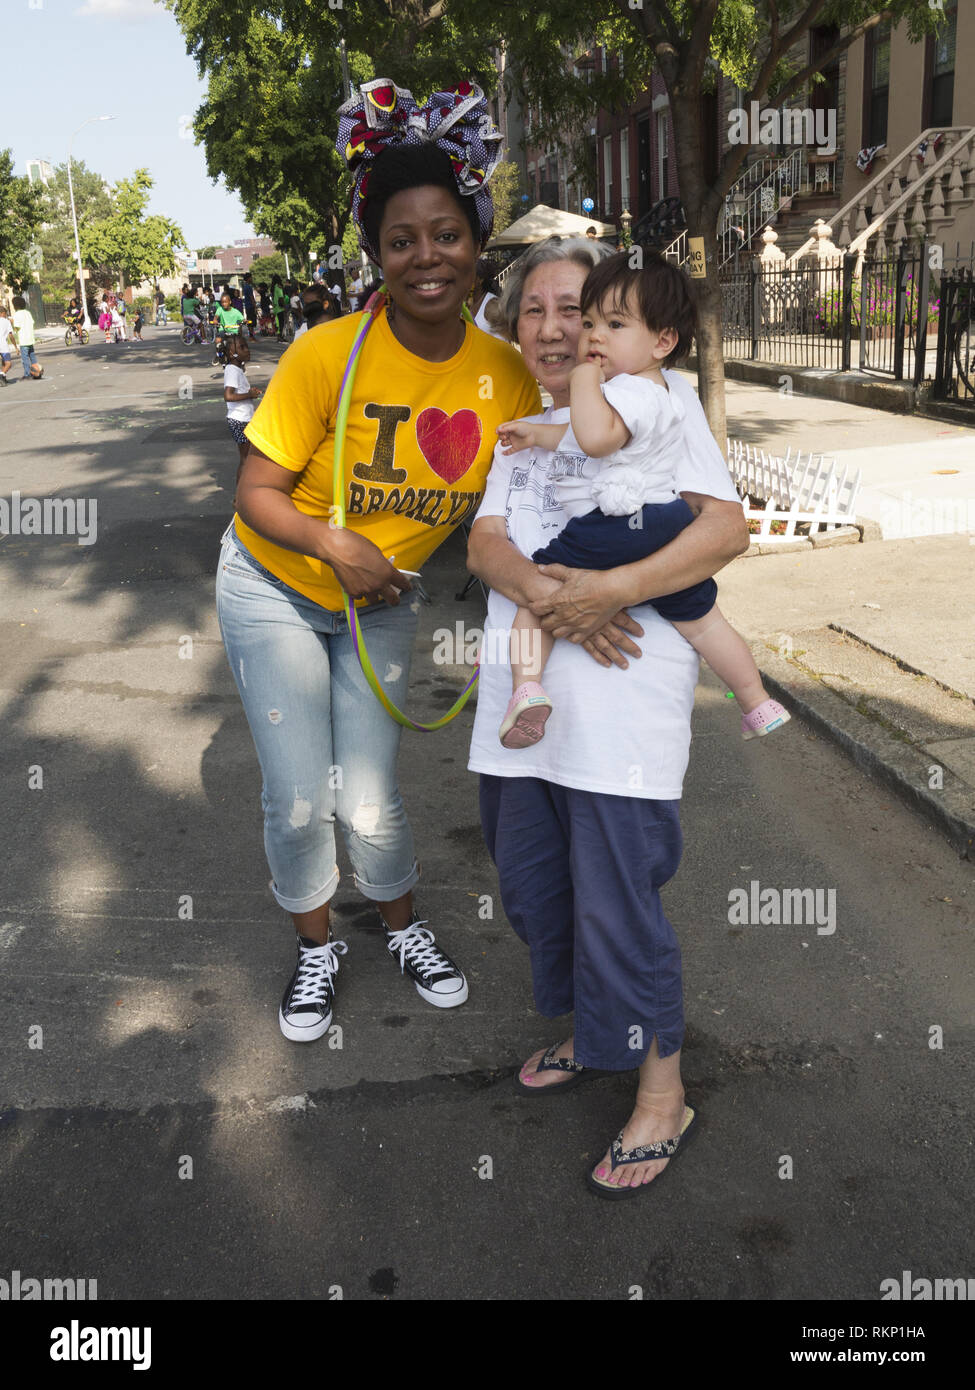 Neighbors at block party in the Bedford-Stuyvesant section of Brooklyn, NY. - Stock Image